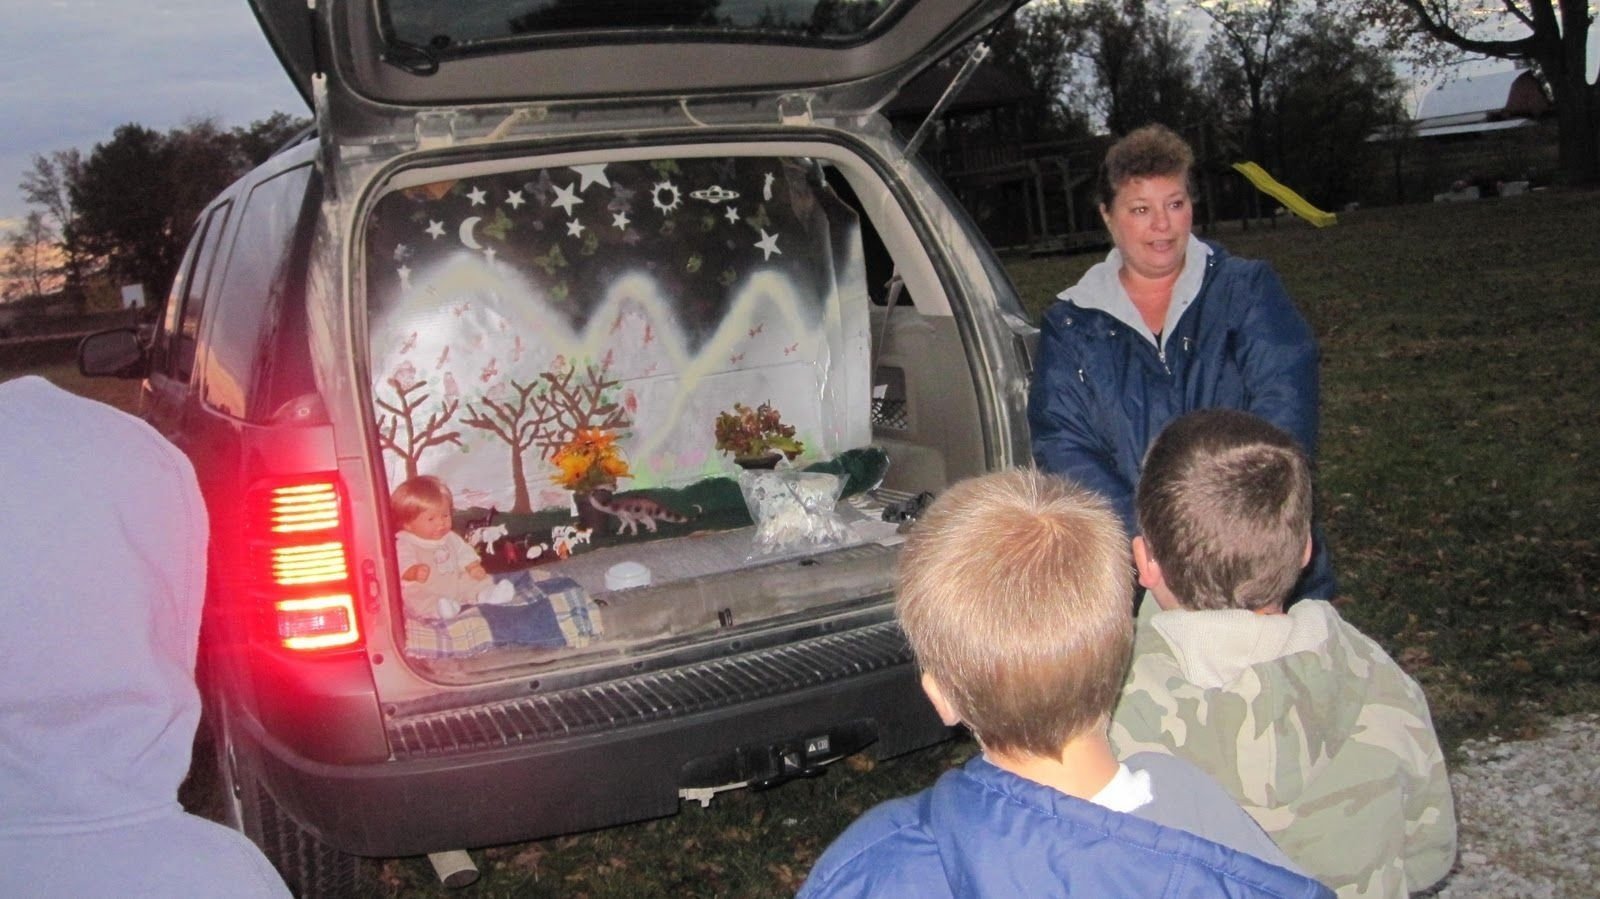 10 Attractive Biblical Trunk Or Treat Decorating Ideas image result for christian trunk or treat themes fall halloween